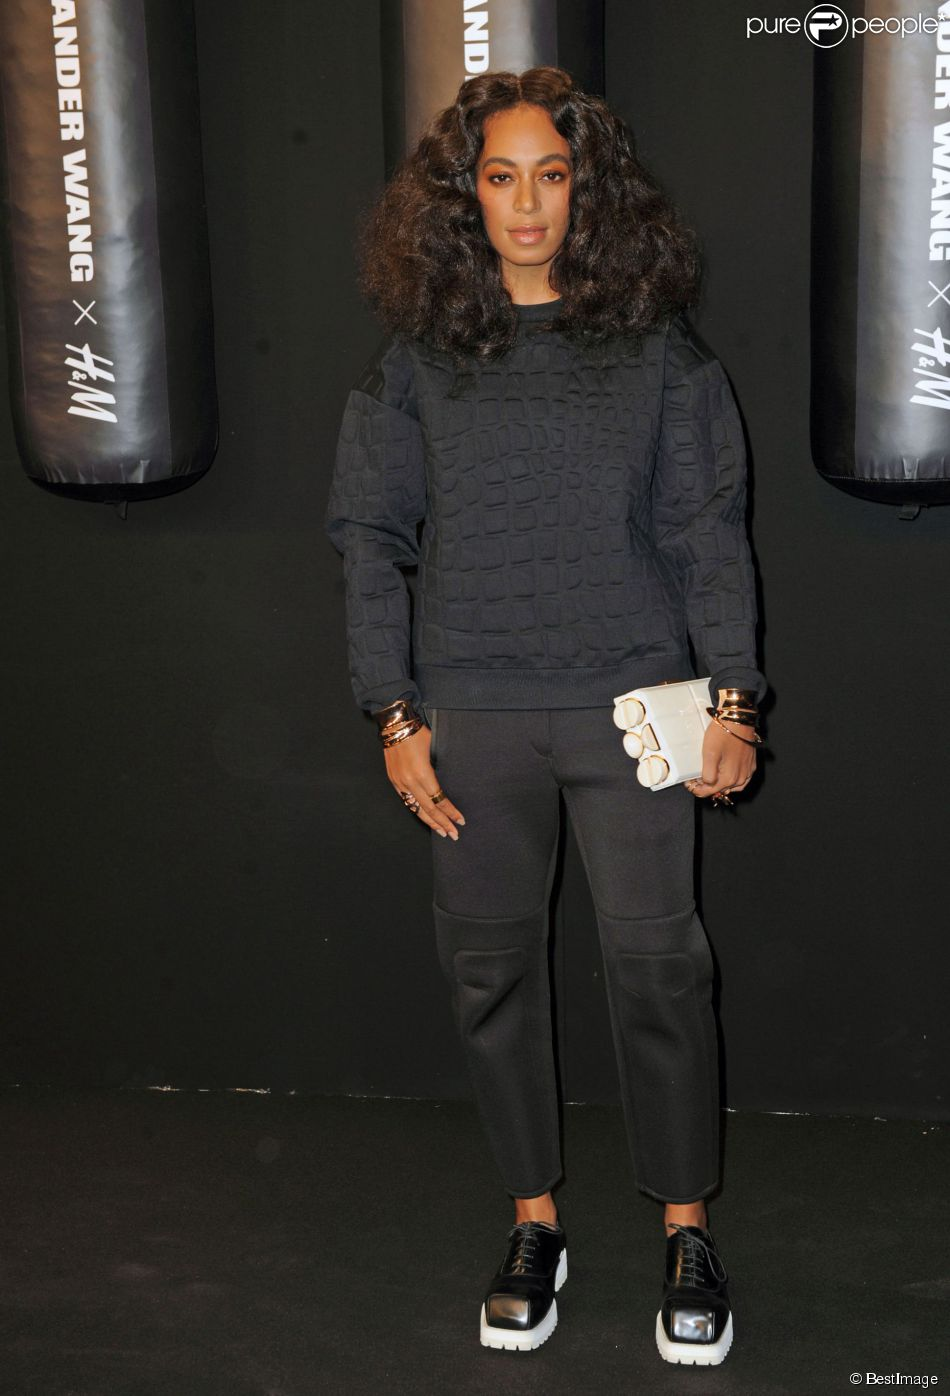 Solange Knowles lors du lancement de la collection capsule Alexander Wang X H&M à New York, le 16 octobre 2014.